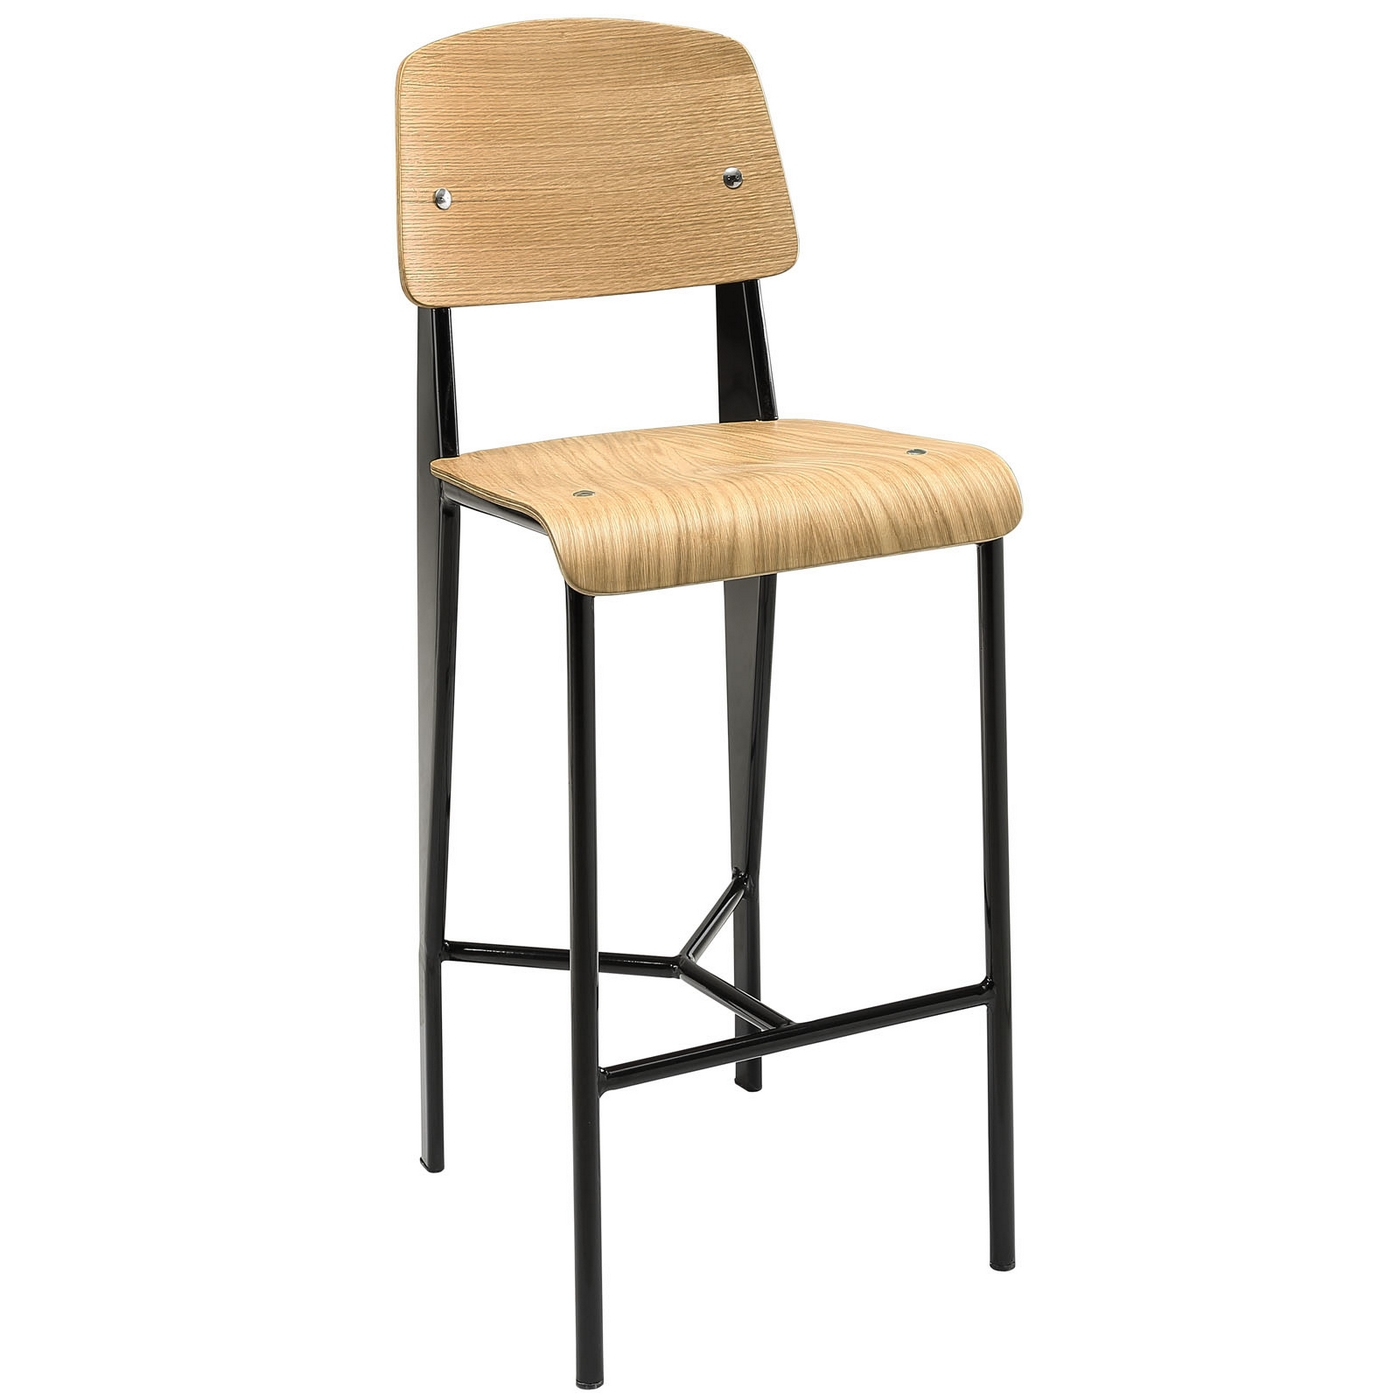 Cabin Contemporary Natural Wood Counter Stool With Black